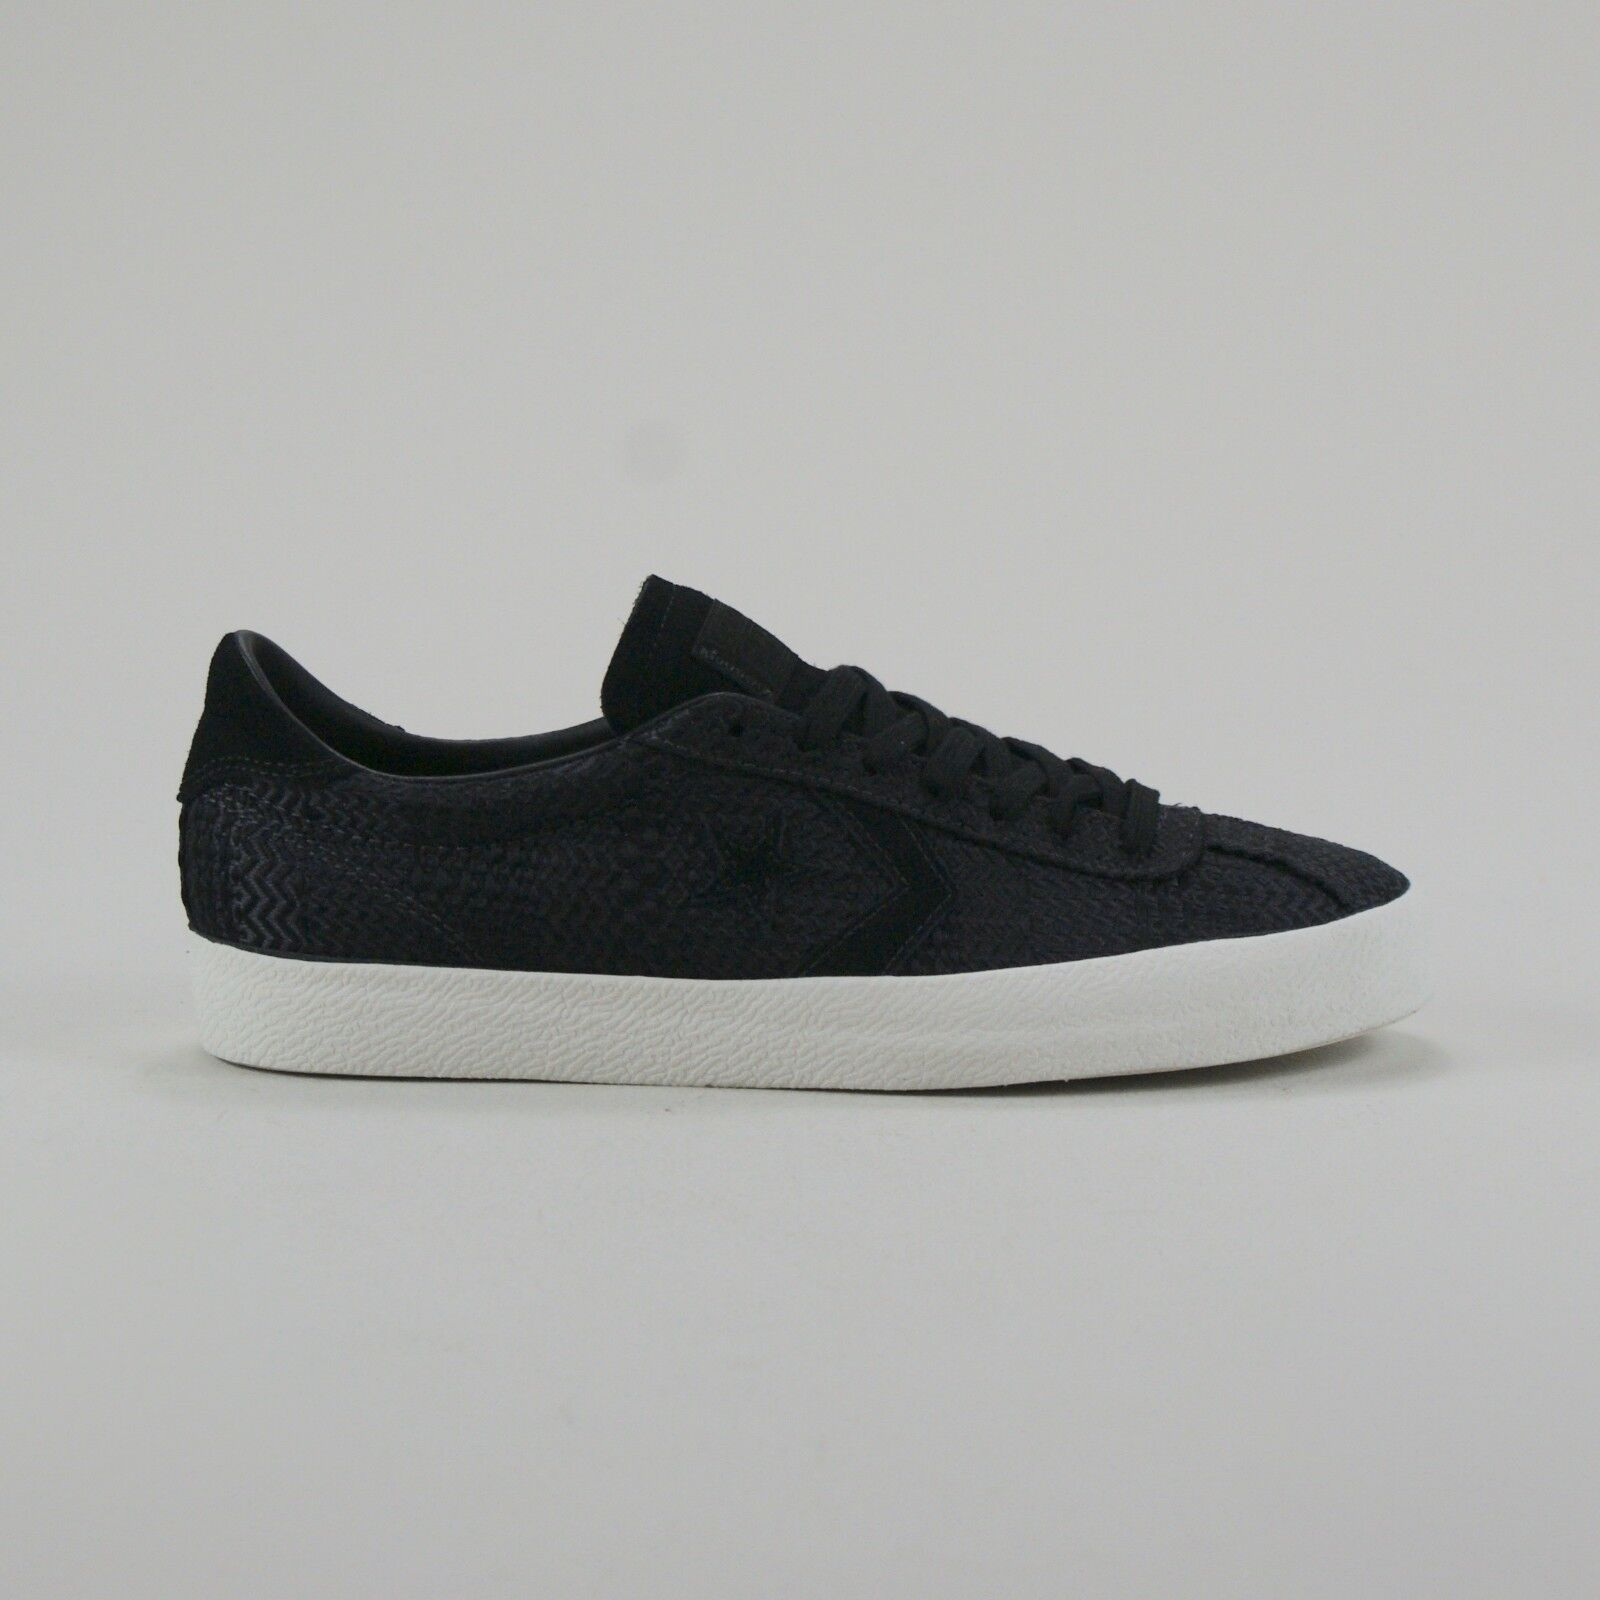 Converse Breakpoint Ox Woven Trainers